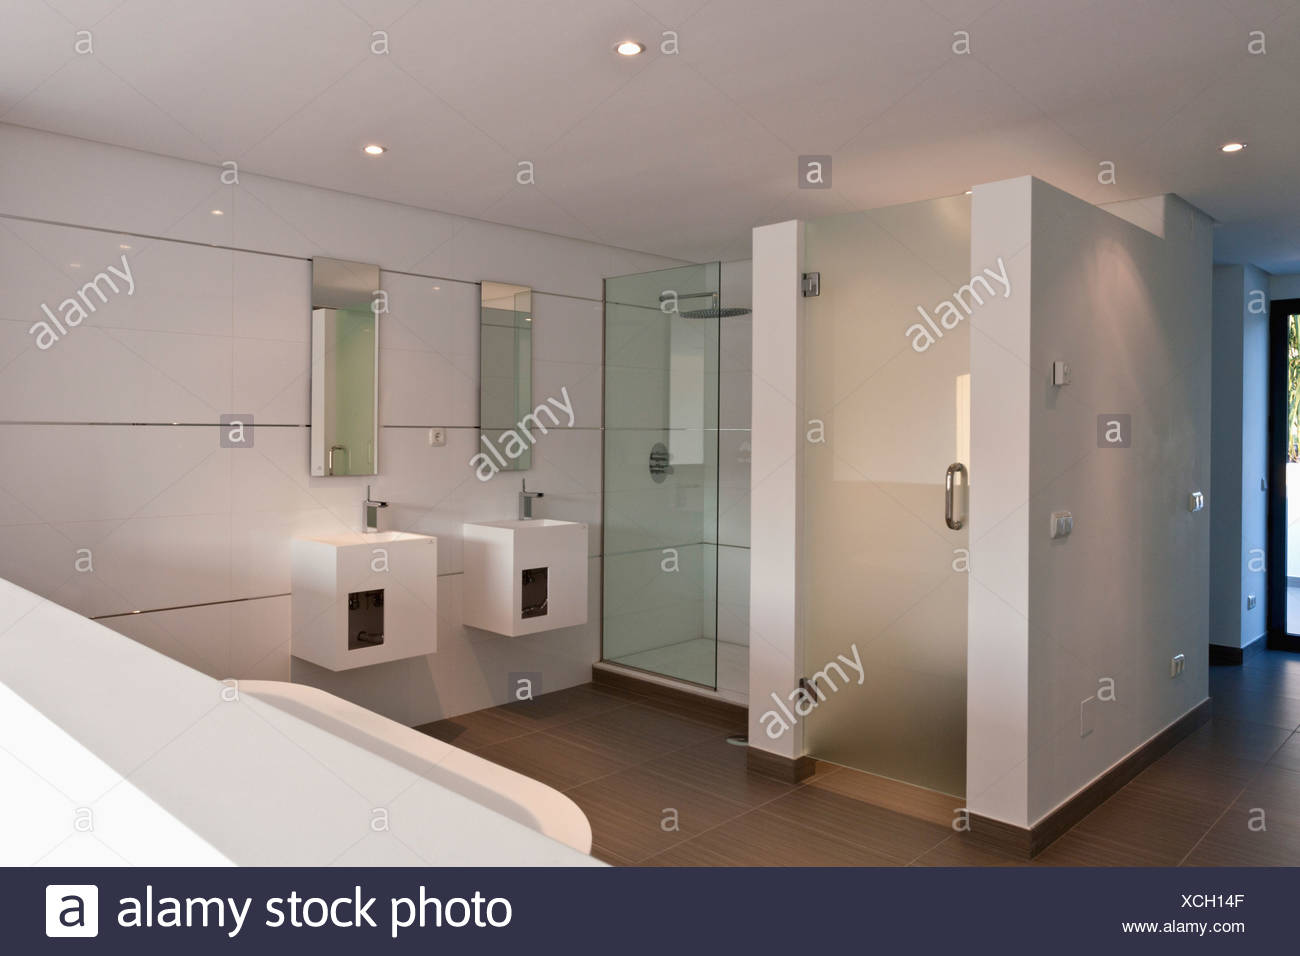 Double showers and basins in square vanity units in modern white ...